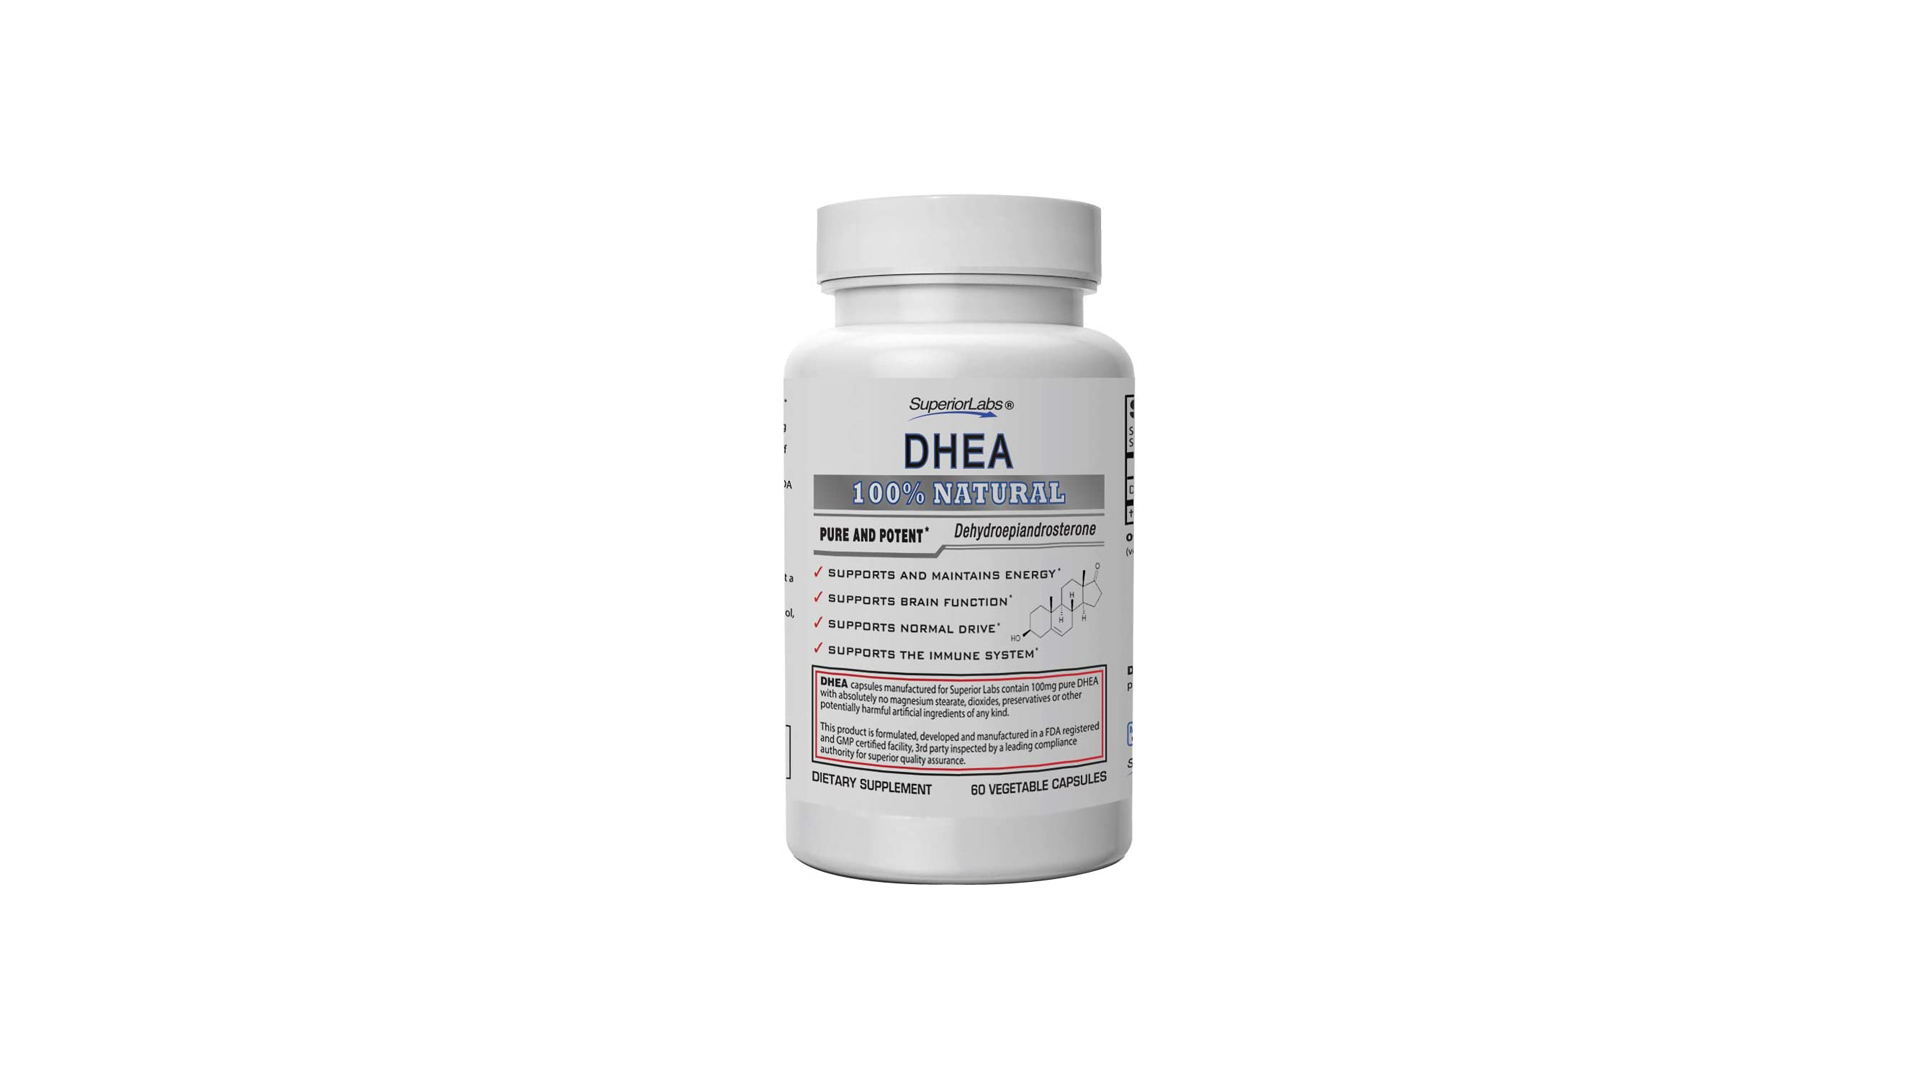 Superior Labs Extra Strength Natural DHEA